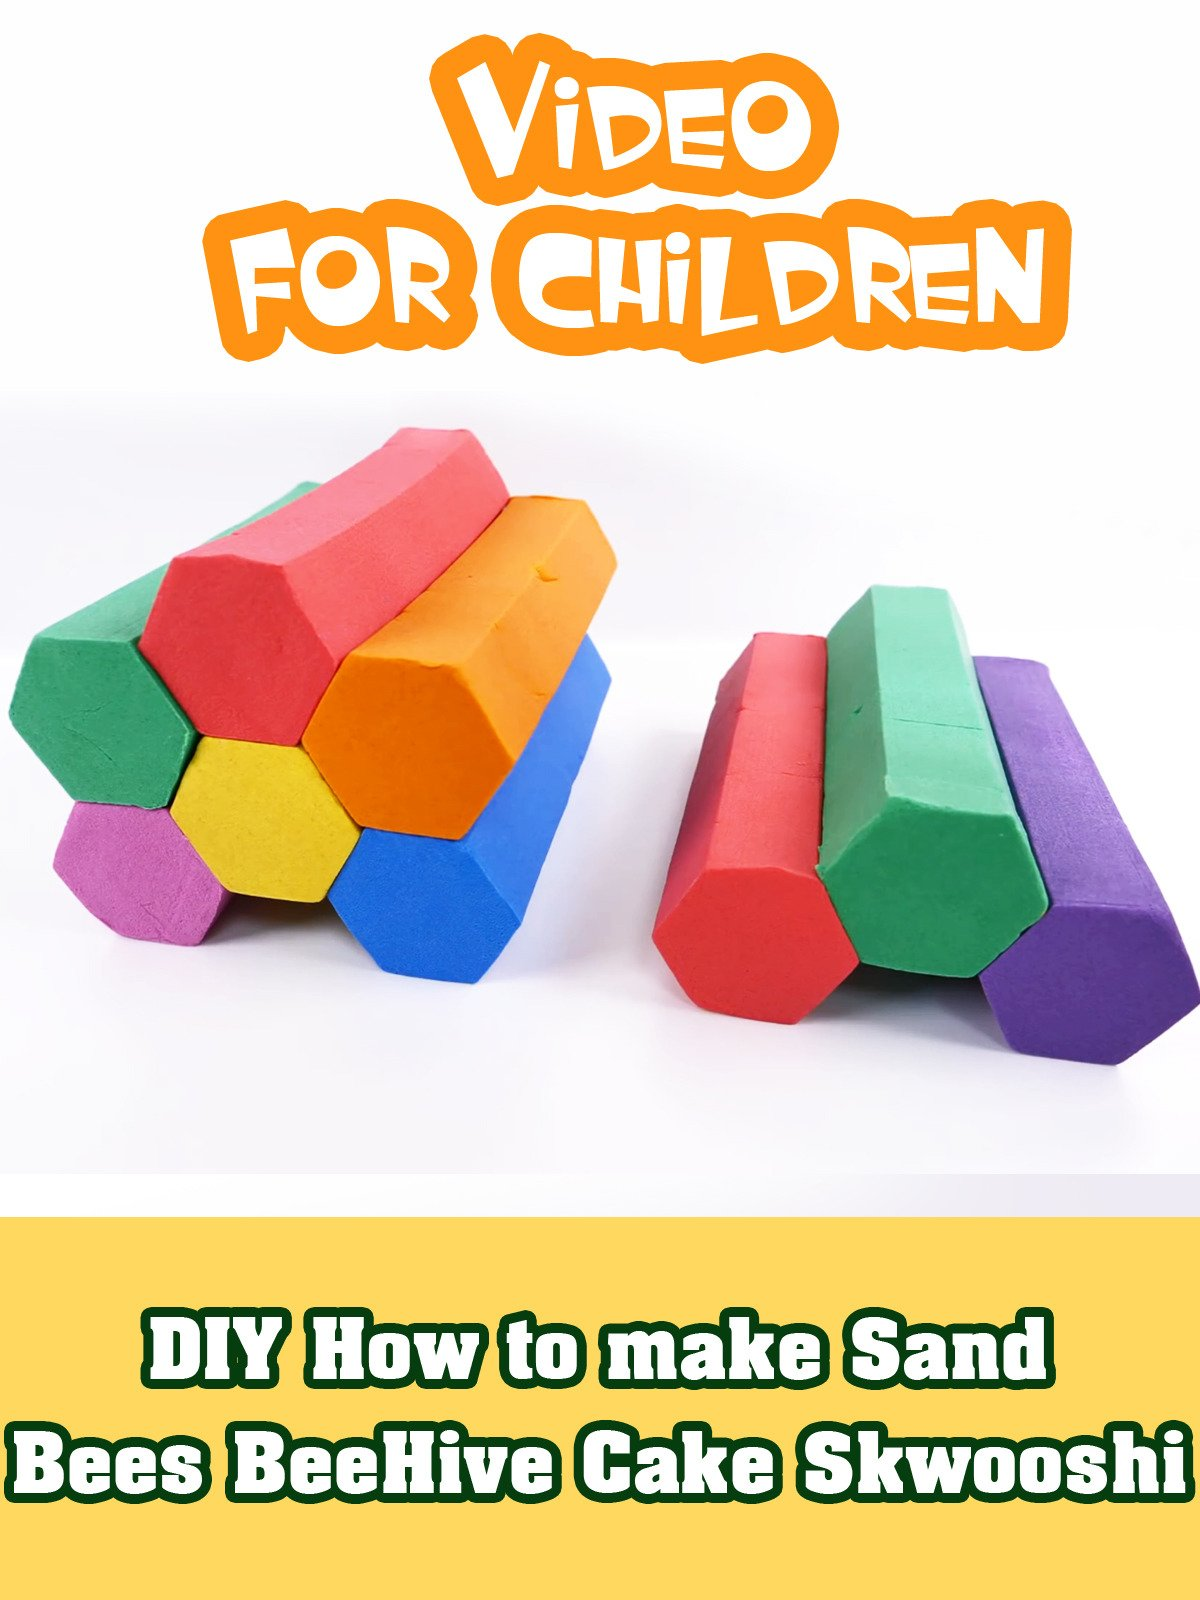 DIY How to make Sand Bees BeeHive Cake Skwooshi